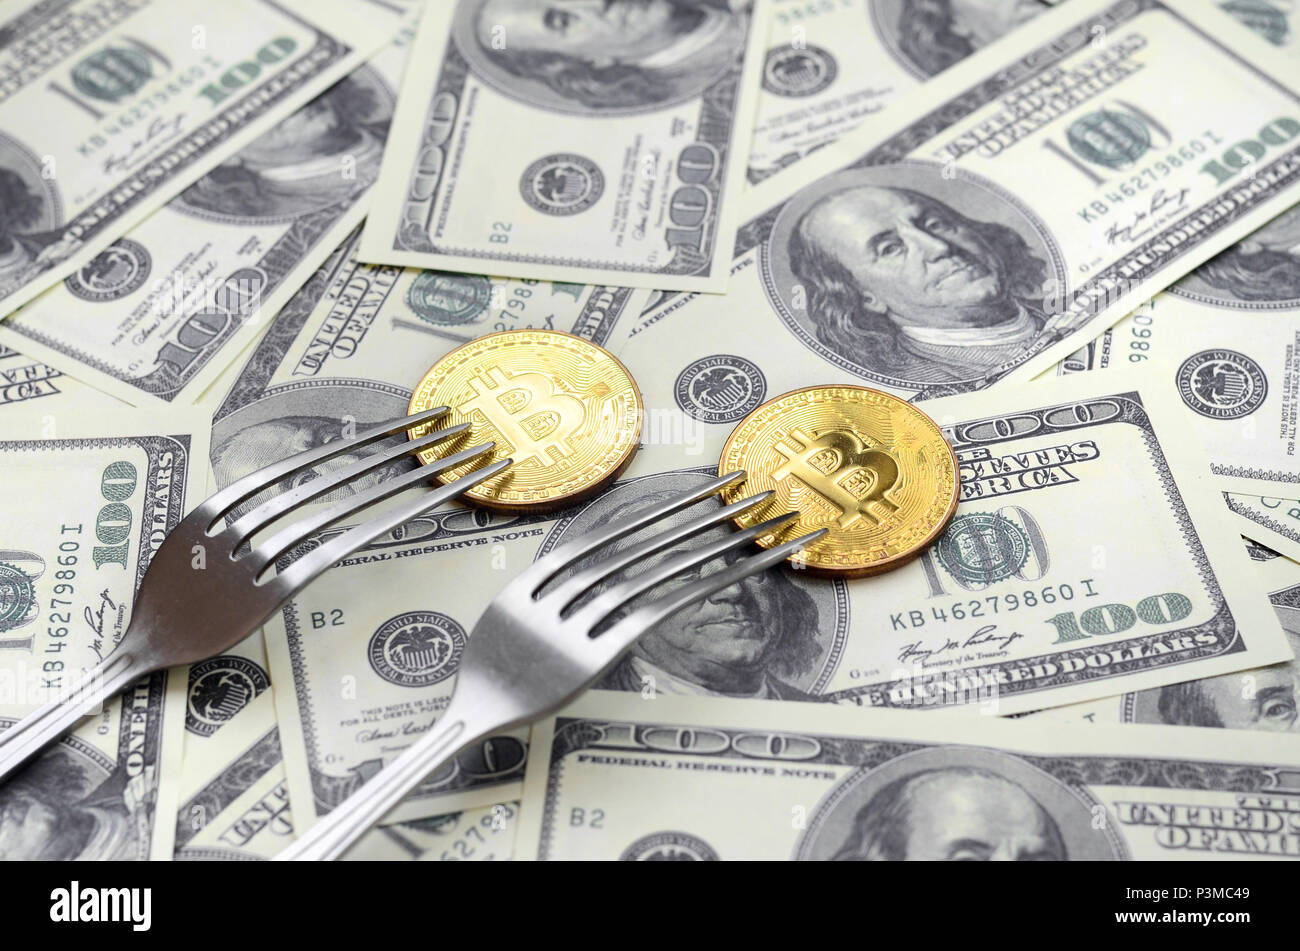 Bitcoin getting New Hard Fork Change, Physical Golden Crytocurrency Coin under the fork on the dollars background. Blockchain Transaction System Crisi - Stock Image